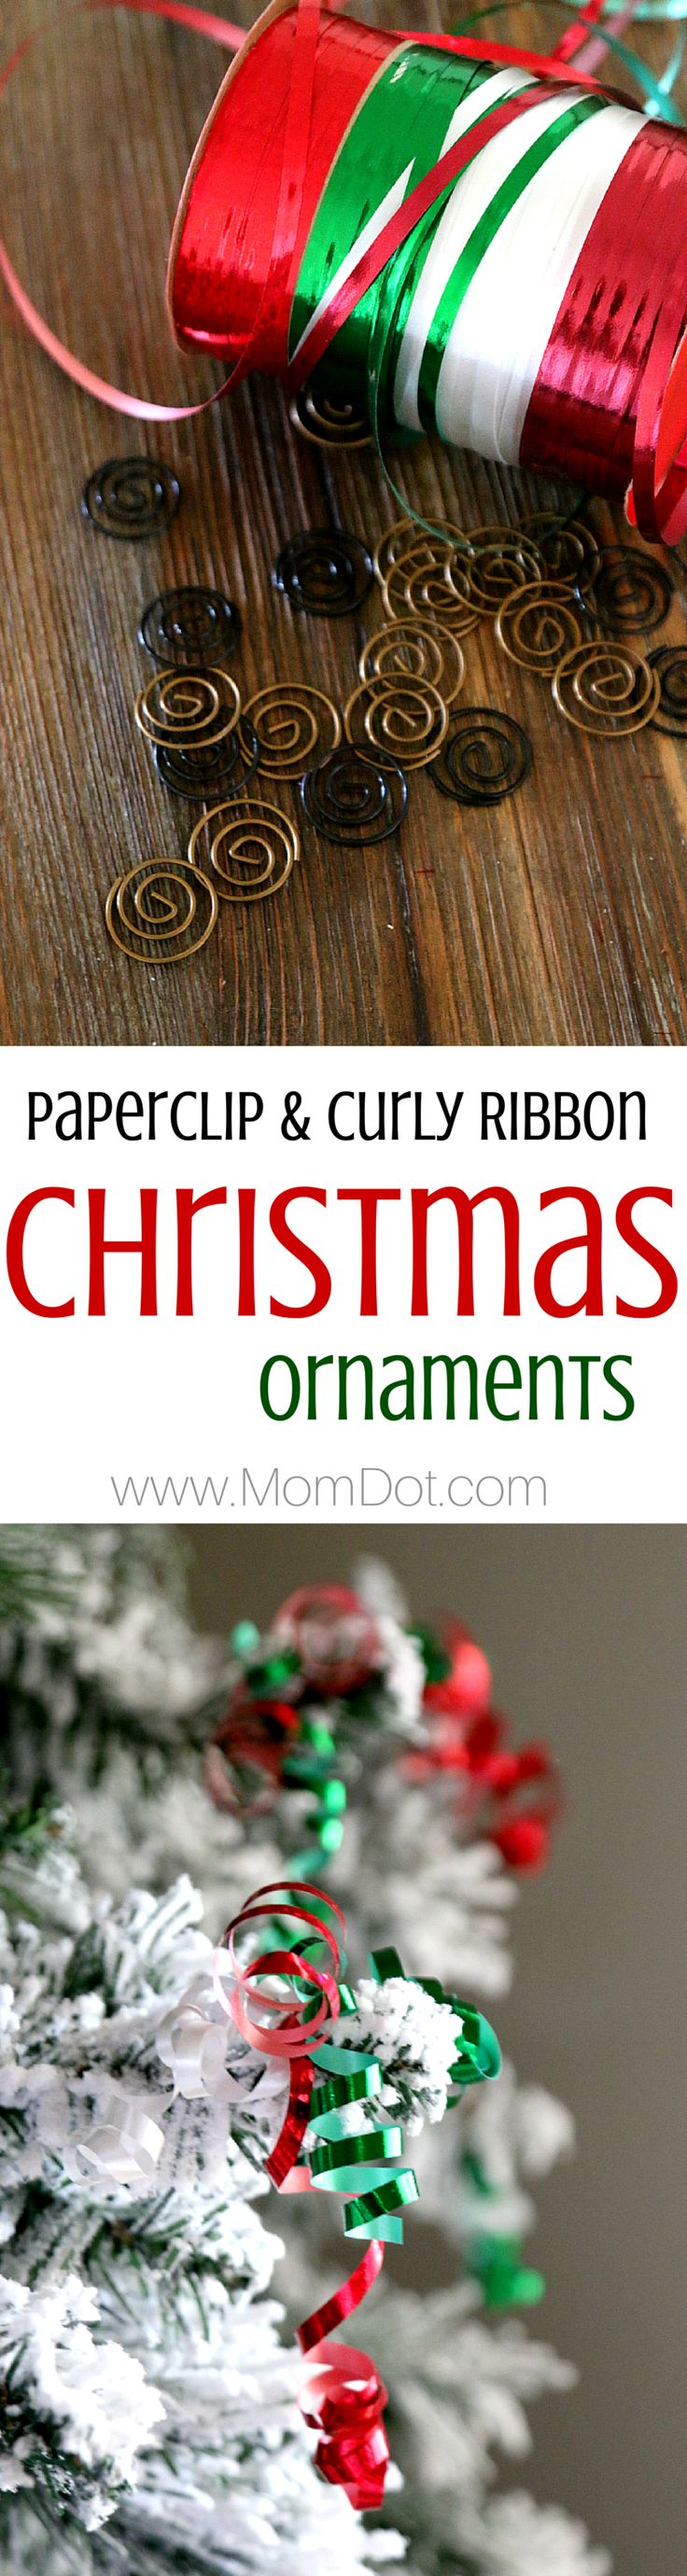 Paperclips and Curly ribbon make the perfect inexpensive DIY homemade Christmas Ornament, come see a step by step tutorial to dress up your tree cost effective (and gorgeously)